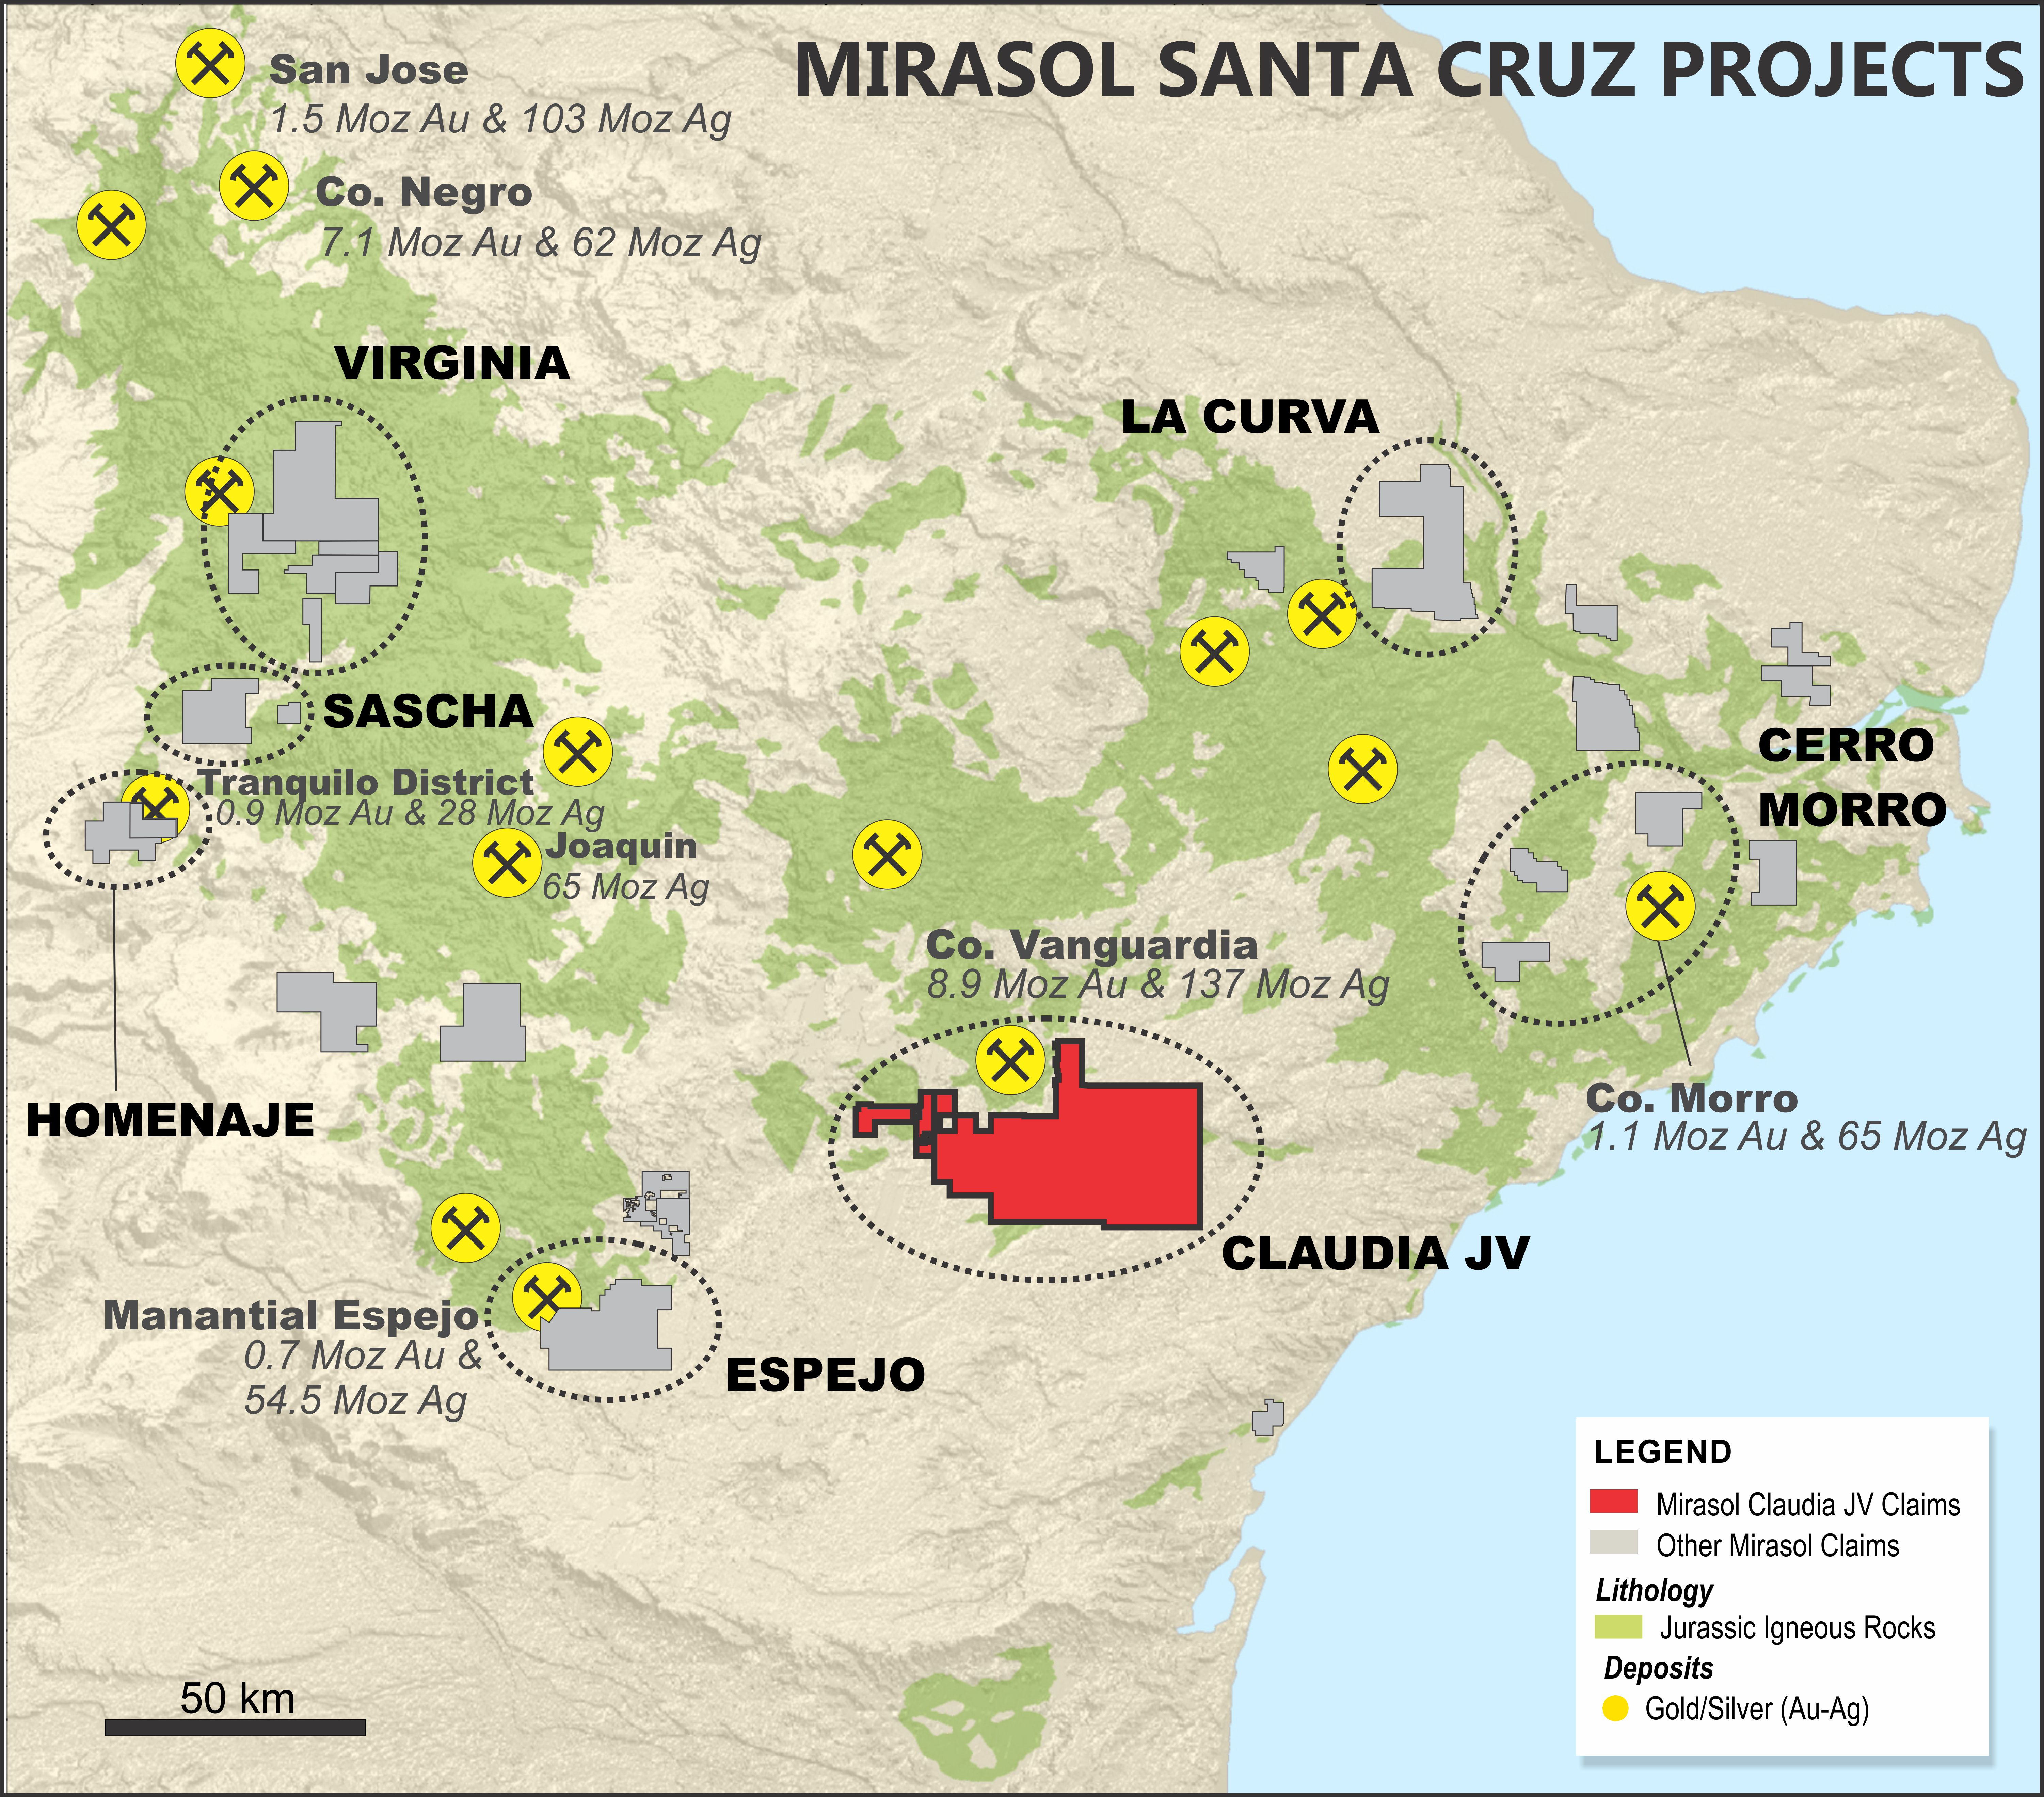 Project location map of partners Mirasol Resources and AngloGold Ashanti's Claudia project. Credit: Mirasol Resources